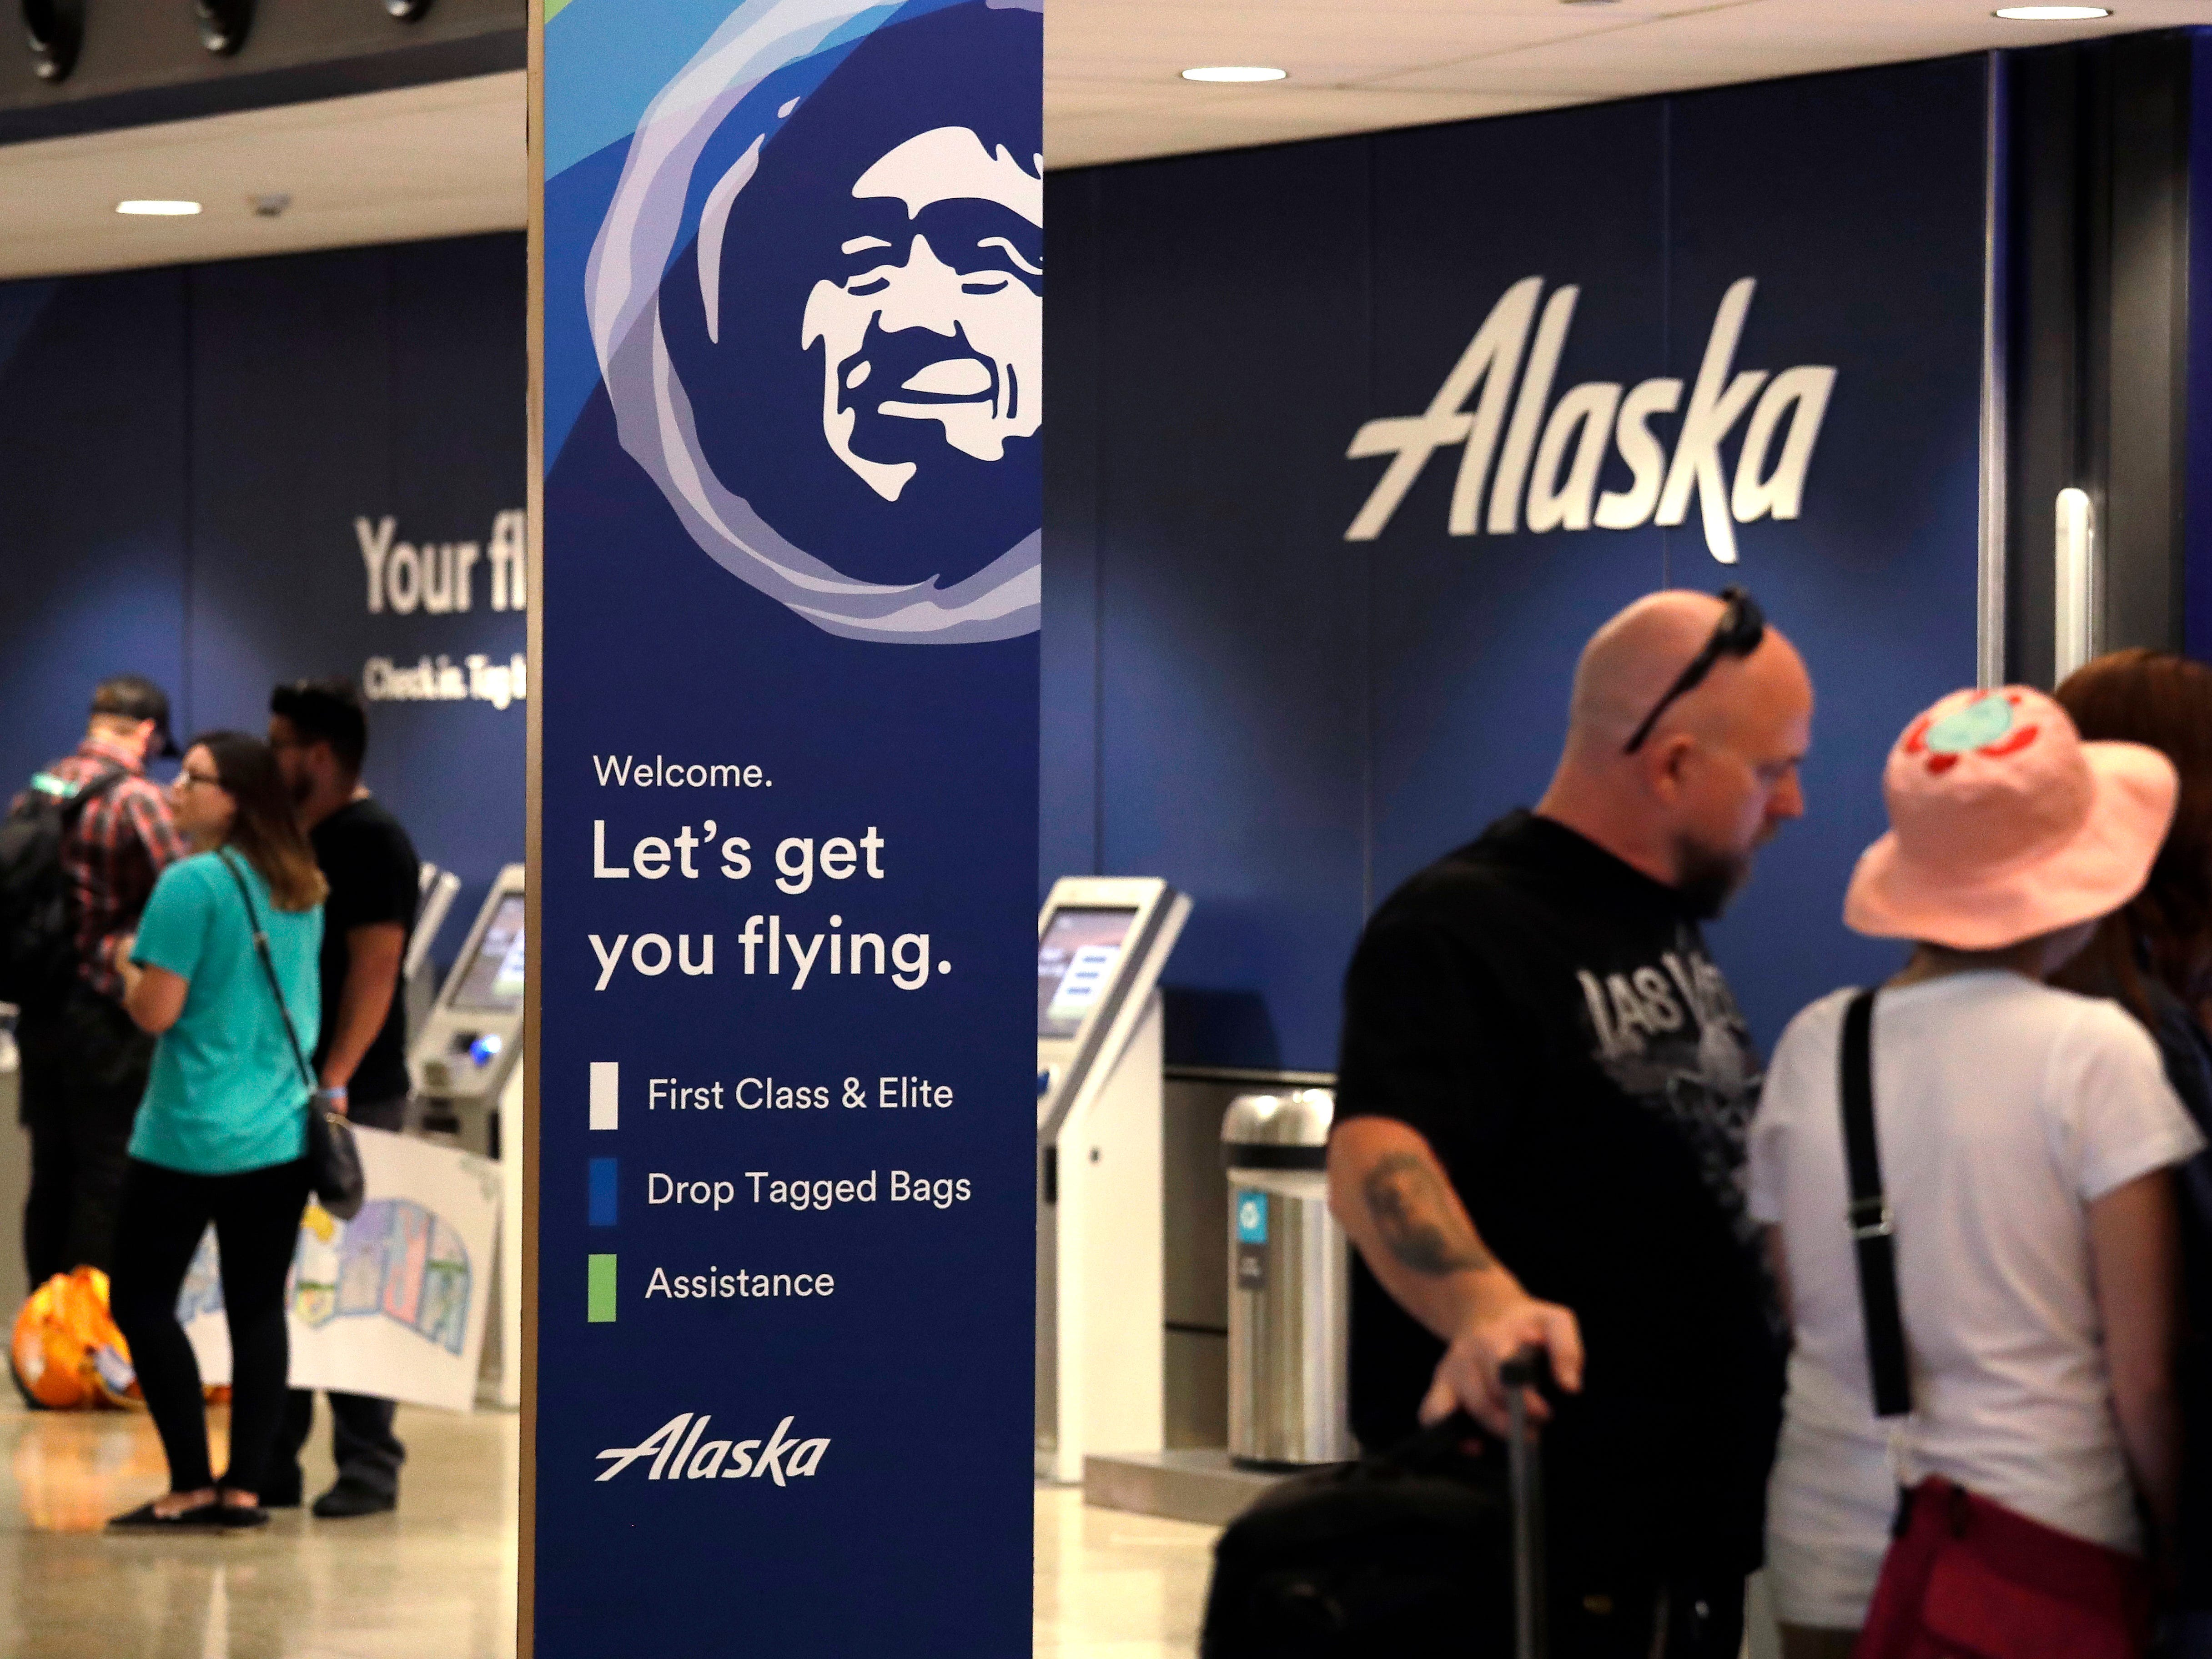 People stand in the Alaska Airlines ticket area at Sea-Tac International Airport Friday, Aug. 10, 2018, in SeaTac, Wash.An airline mechanic stole an Alaska Airlines plane without any passengers and took off from Sea-Tac International Airport in Washington state on Friday night before crashing near Ketron Island, officials said. (AP Photo/Elaine Thompson) ORG XMIT: WAET114